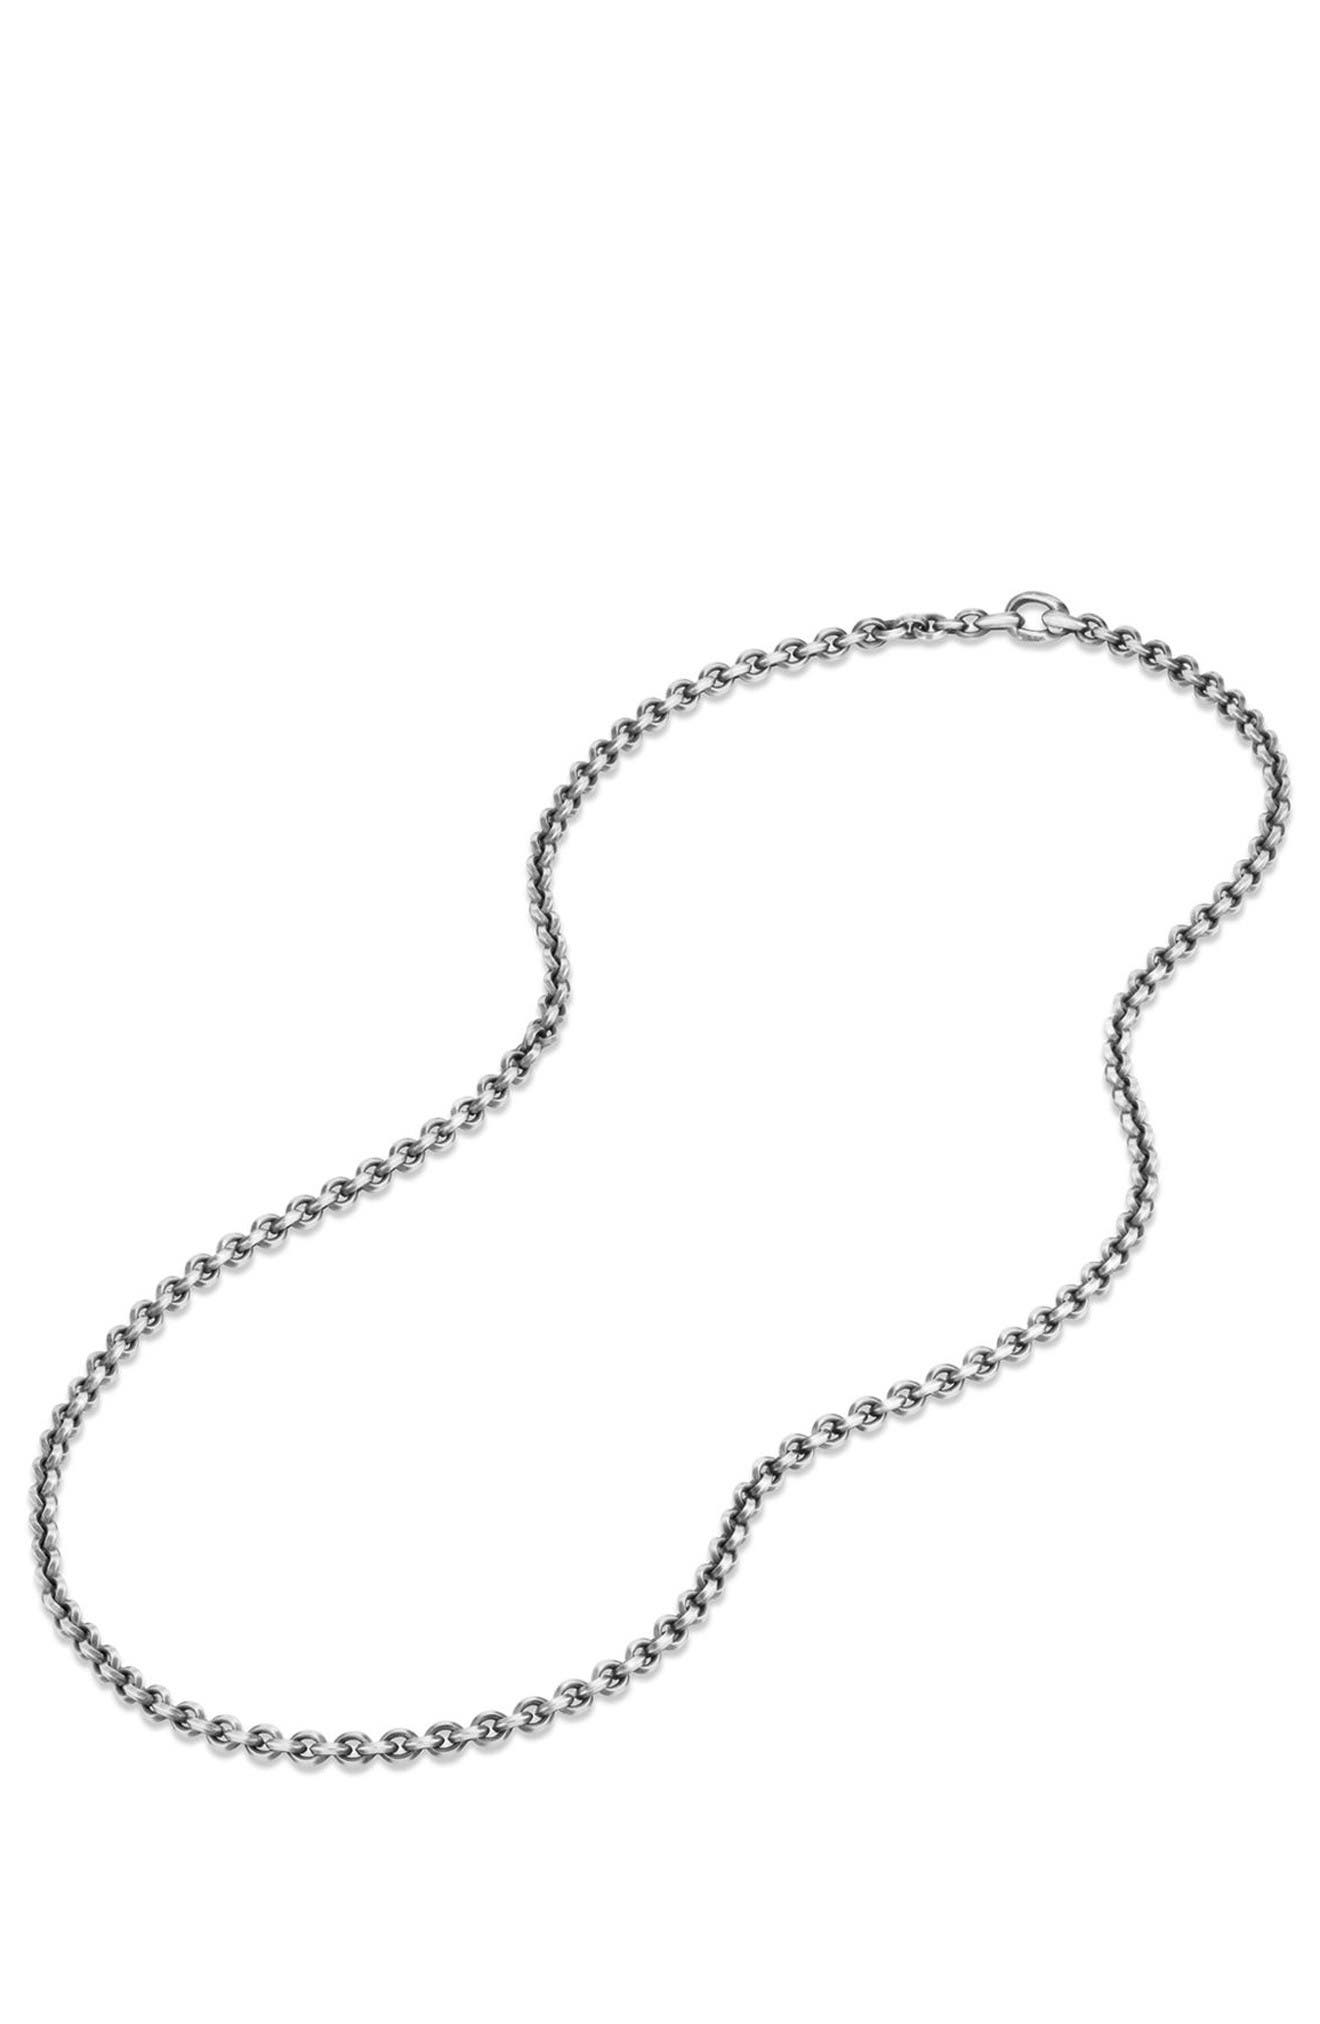 Knife Edge Chain Necklace,                             Alternate thumbnail 2, color,                             Silver